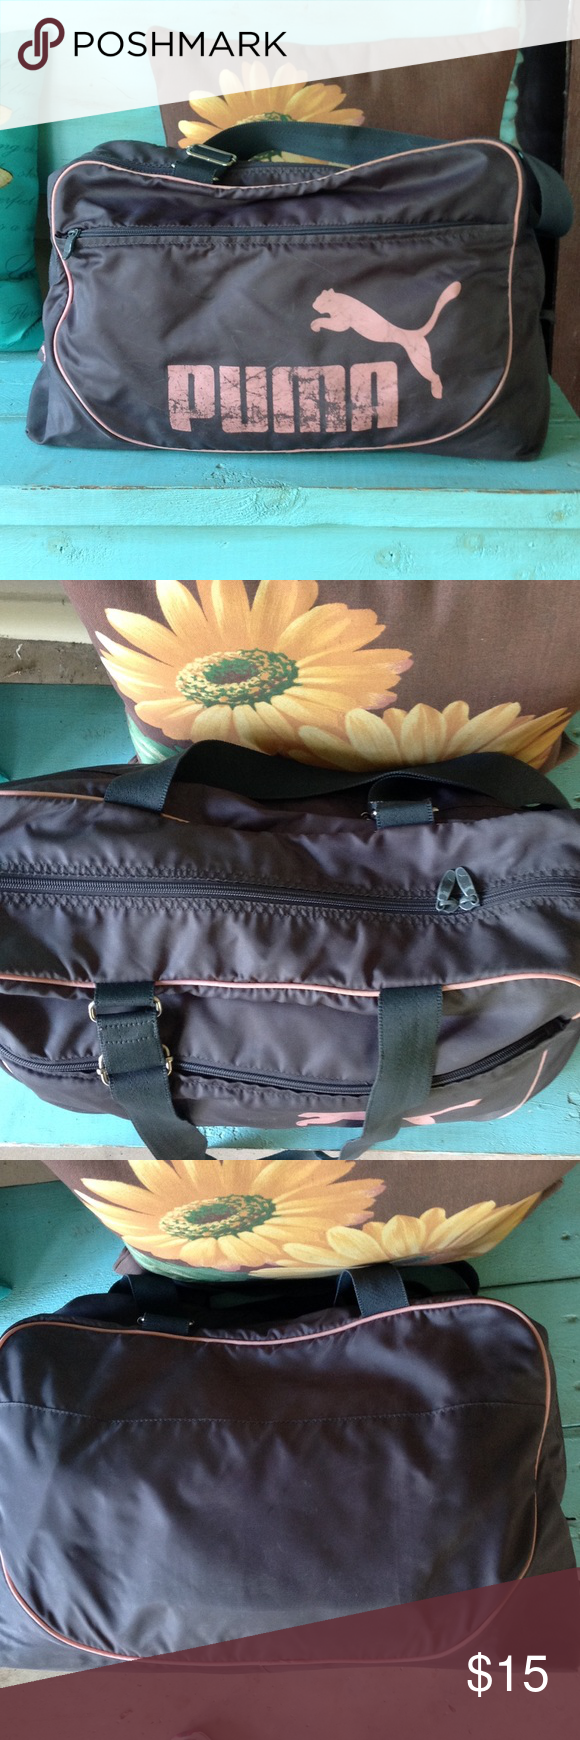 Puma duffle bag. Puma duffle bag. Measures 19 inches long and is 16 inches tall.,it is in used condition see pics no holes,adjustable straps,inside zippered compartment. Puma Bags